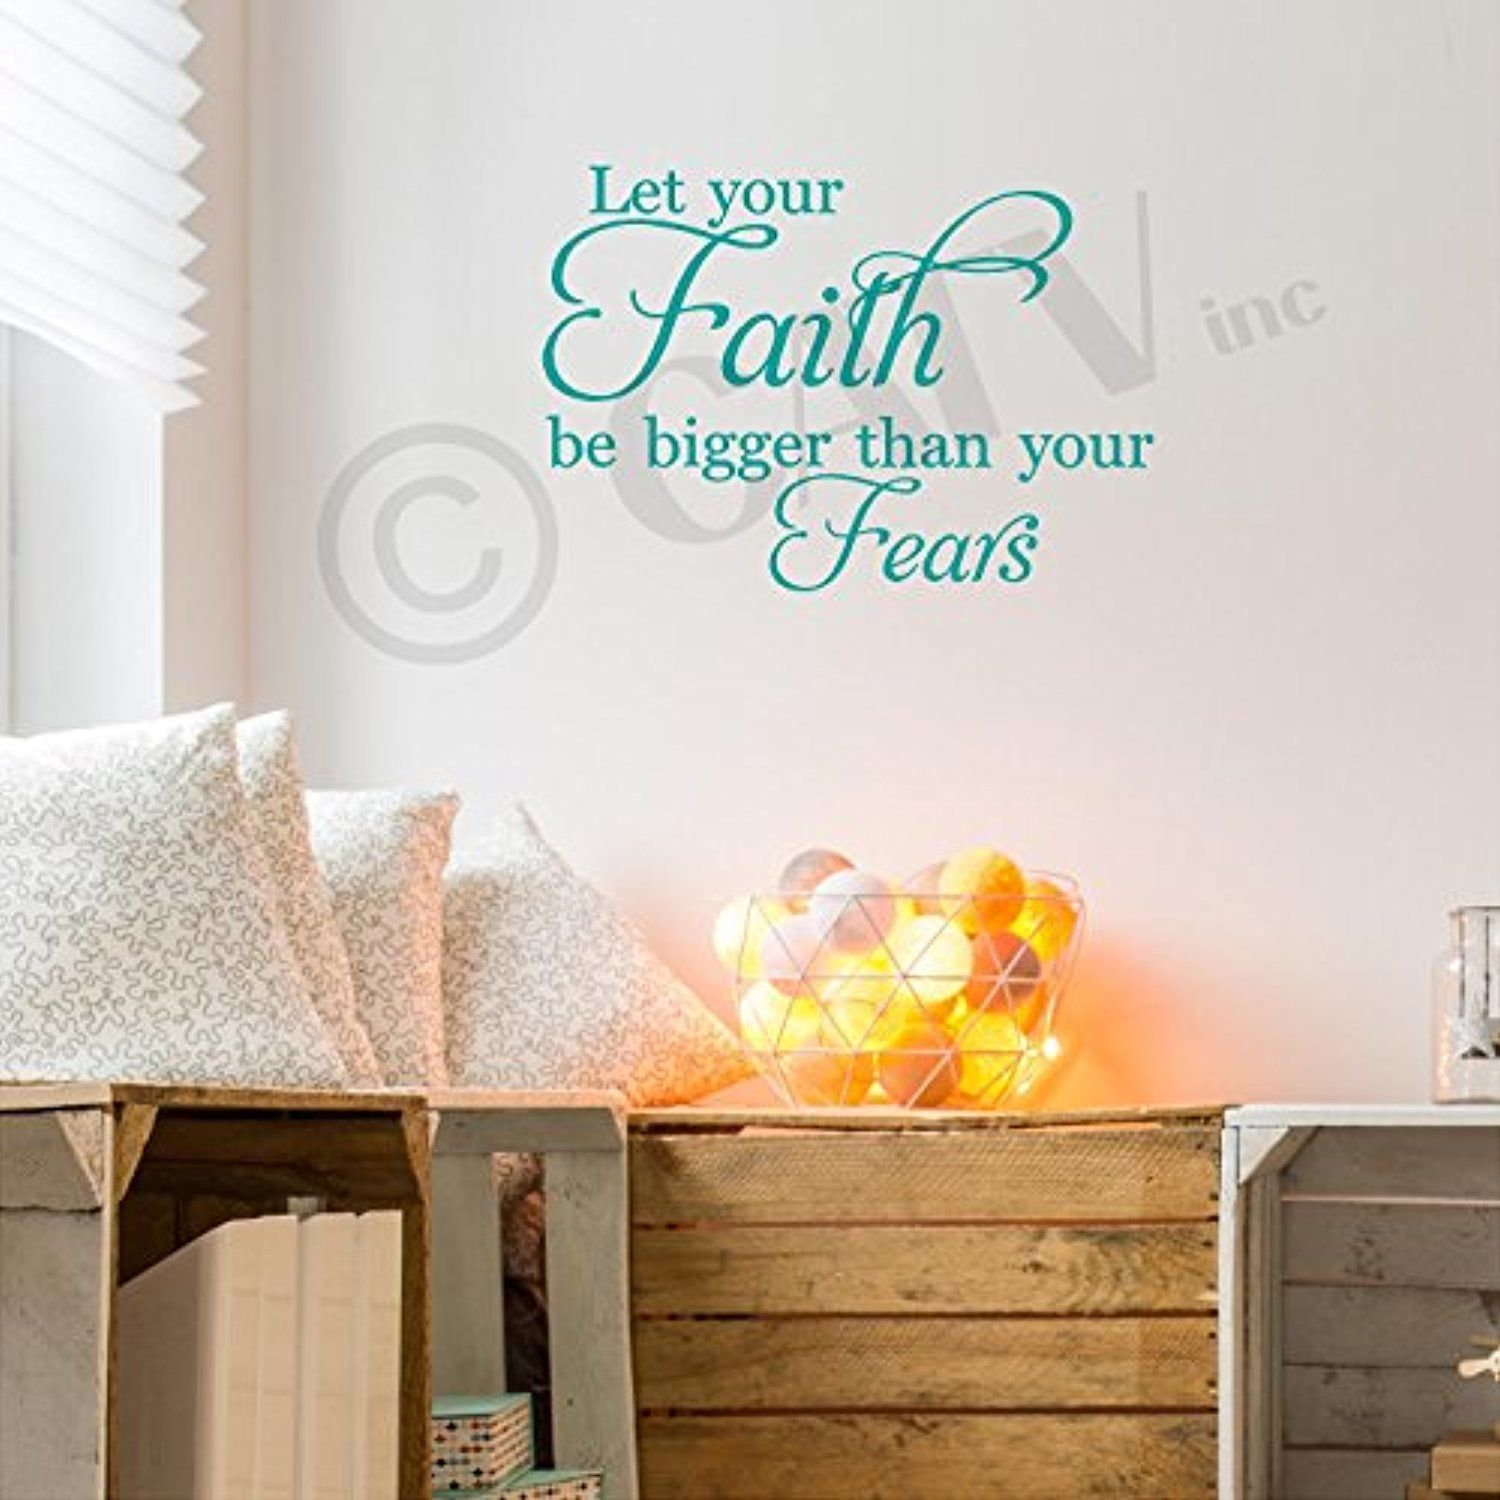 Let Your Faith Be Bigger Than Your Fears Vinyl Lettering Wall Decal